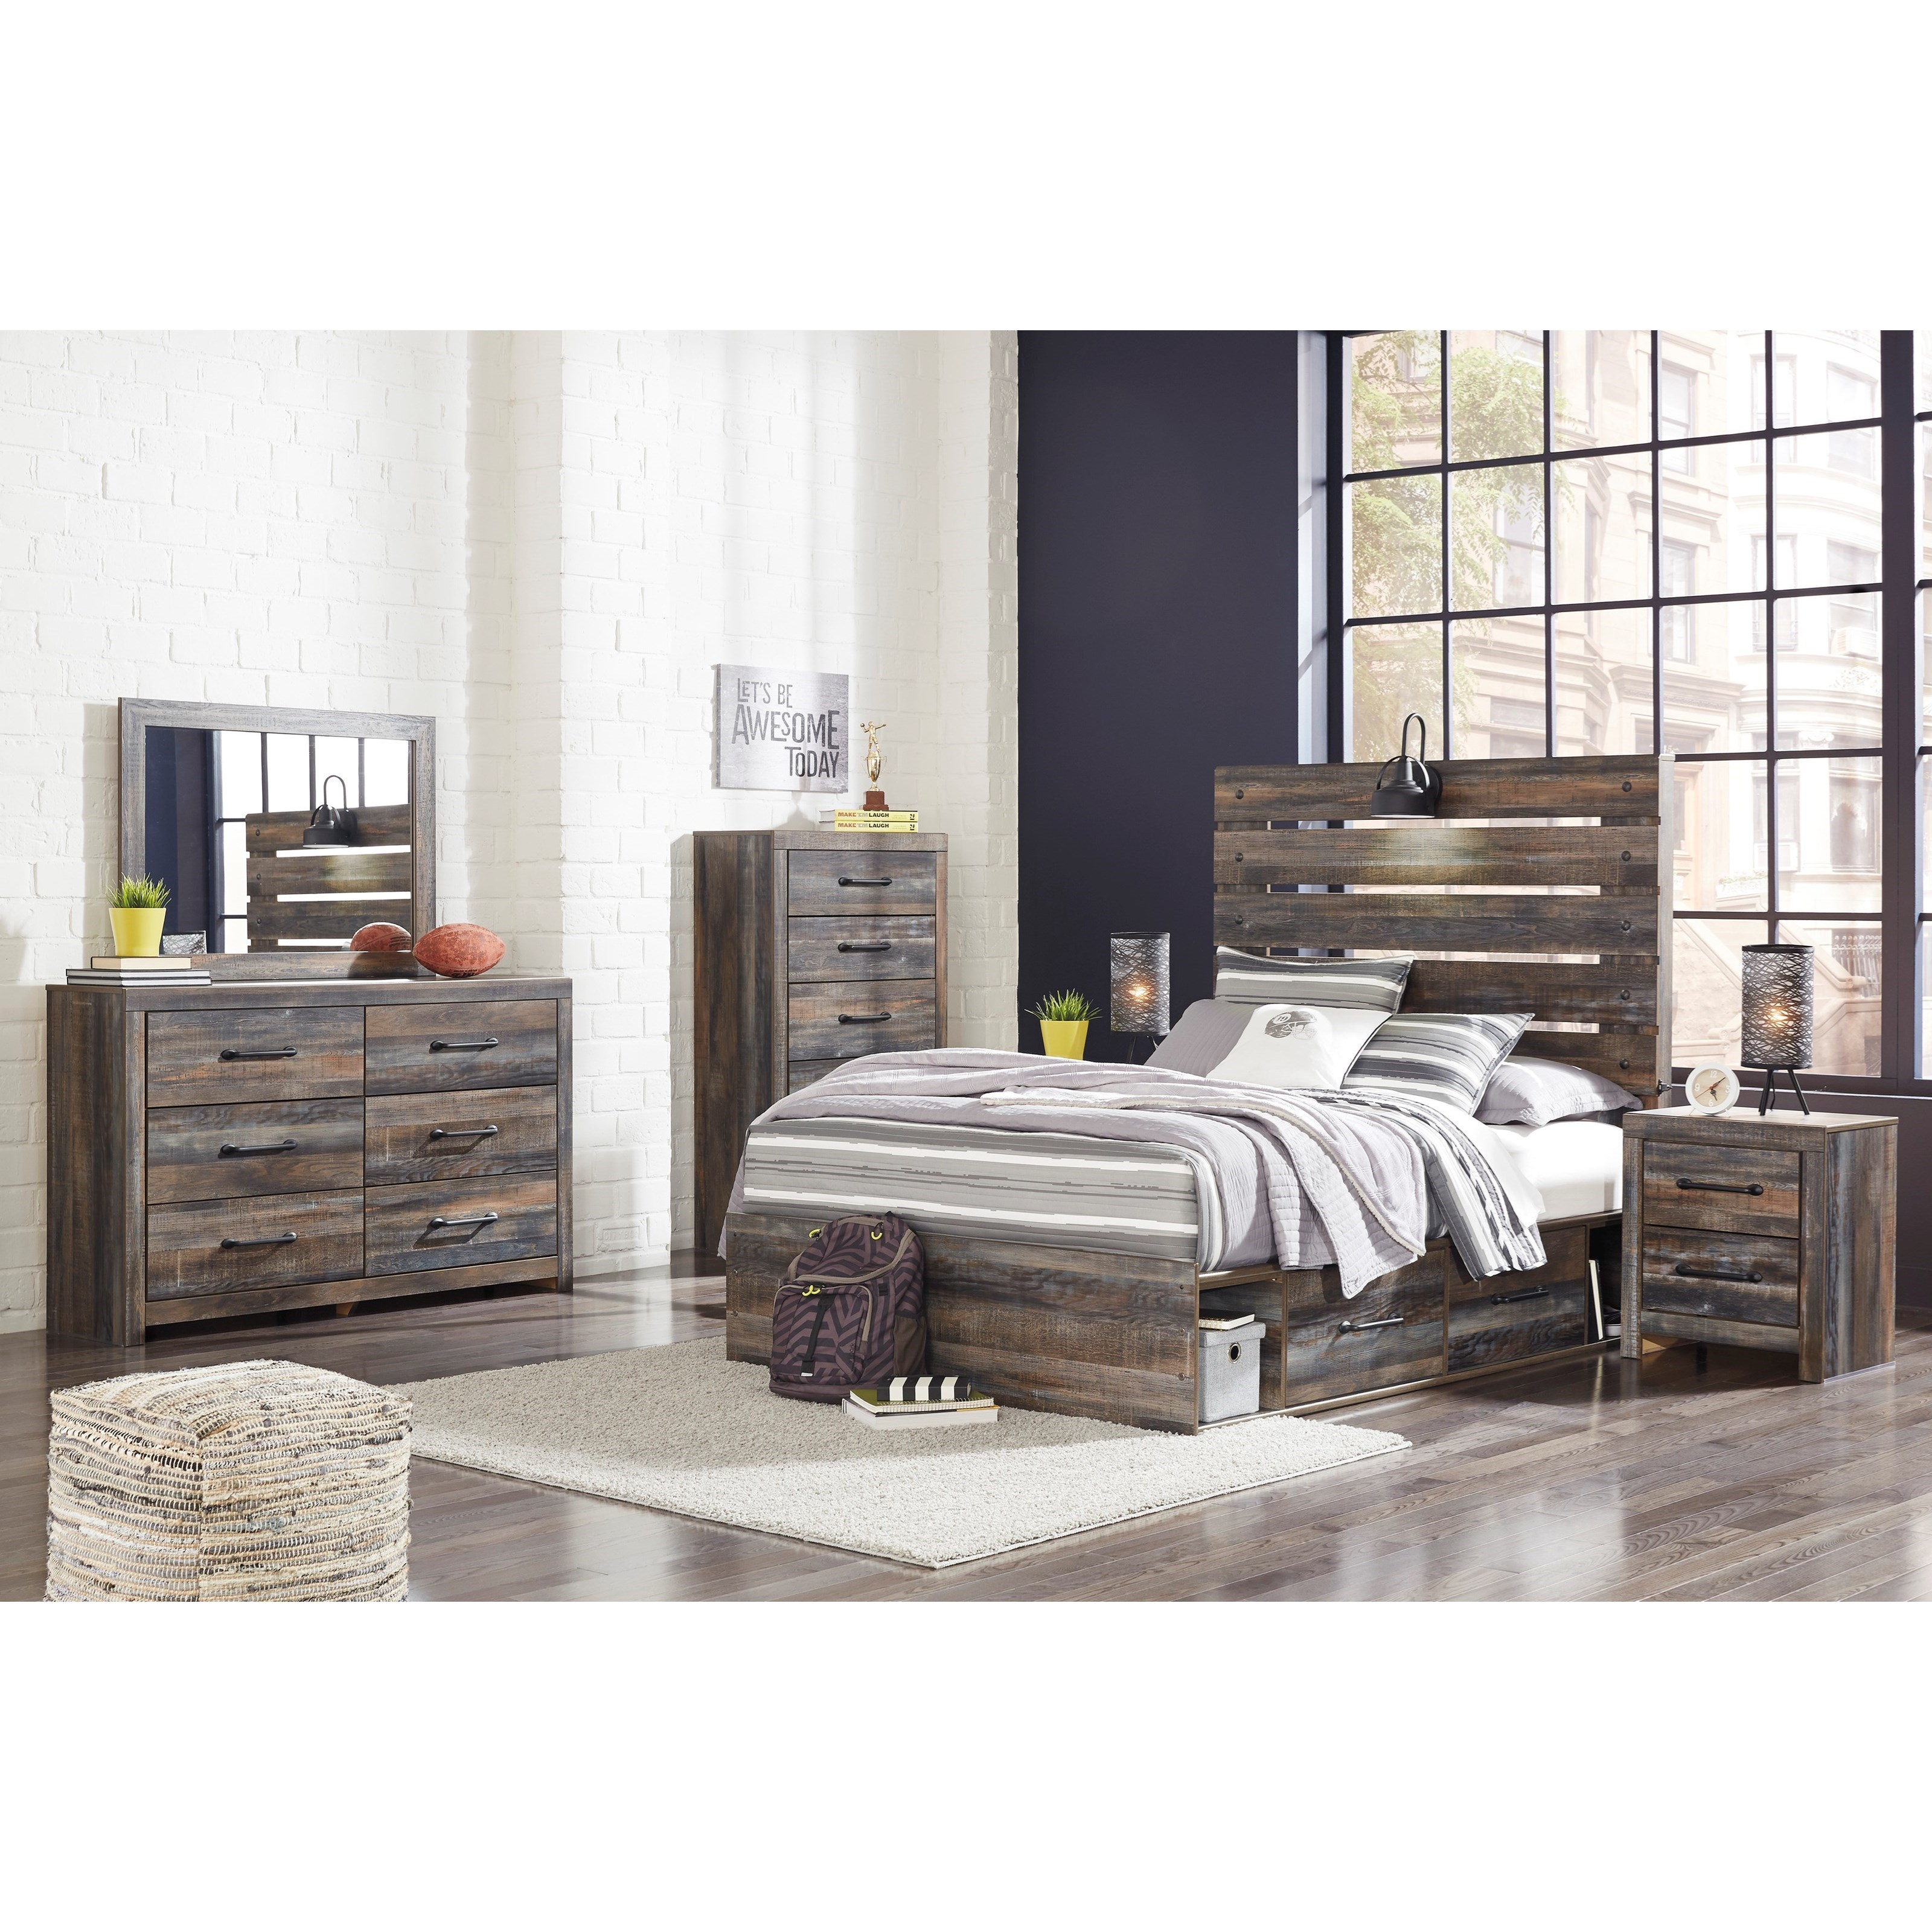 Ashley Furniture Superstore: Signature Design By Ashley Drystan Rustic Full Storage Bed